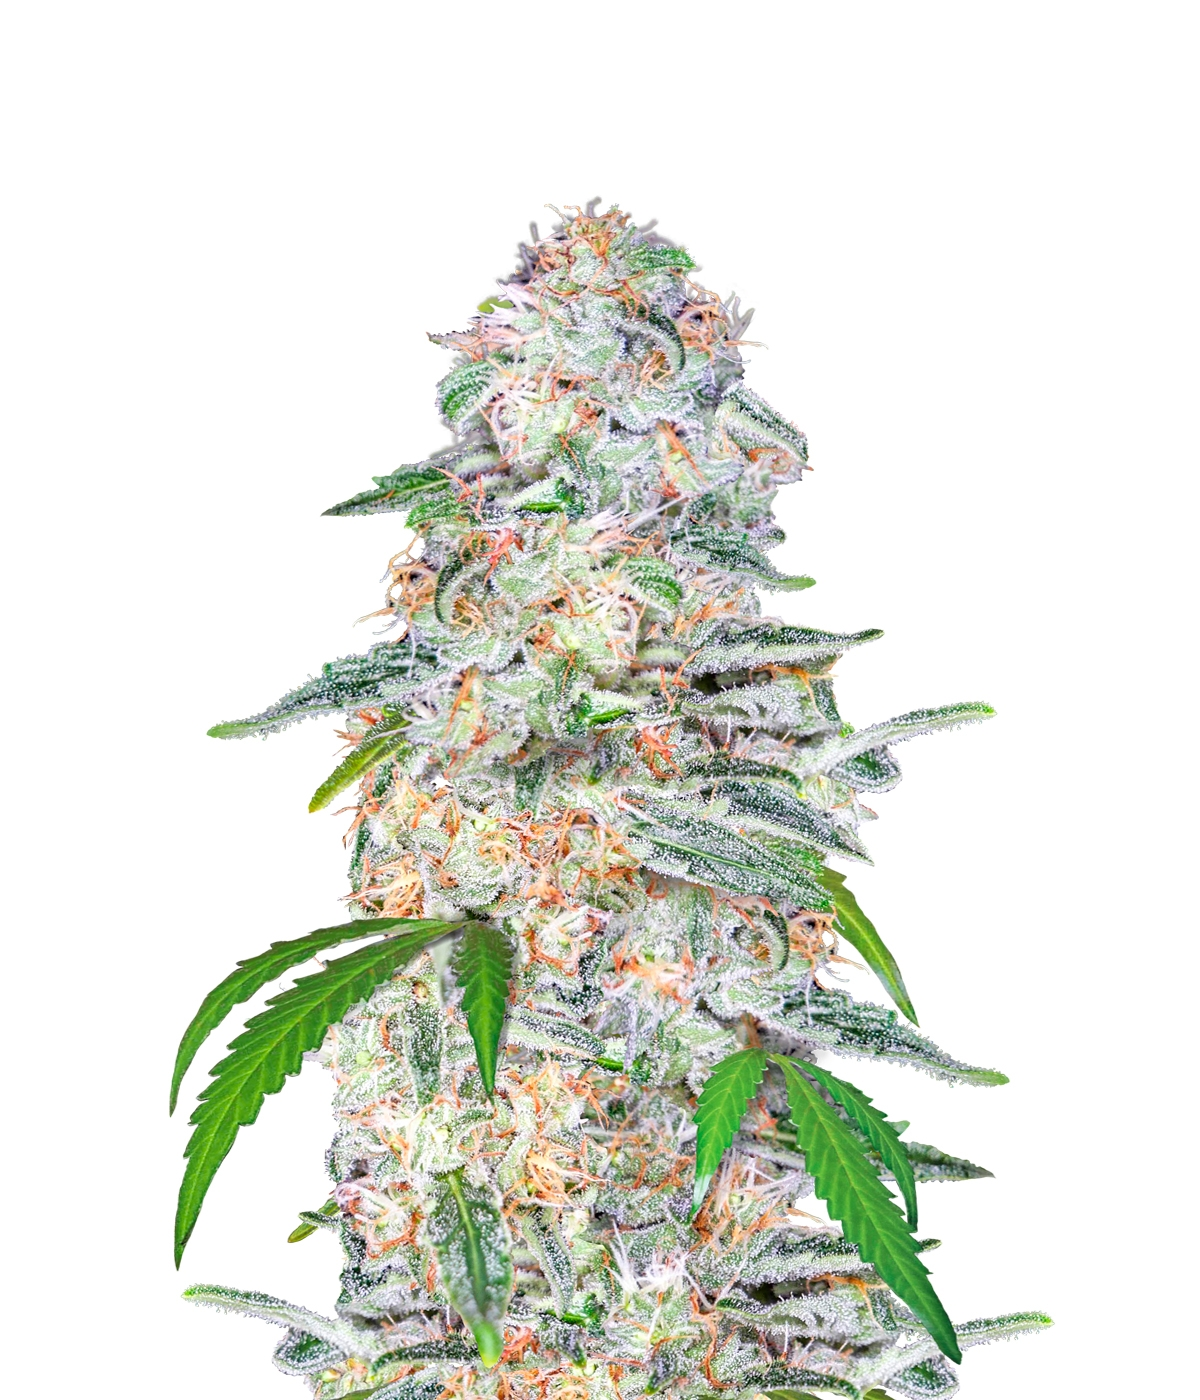 Blue Dream Auto Feminised Seeds